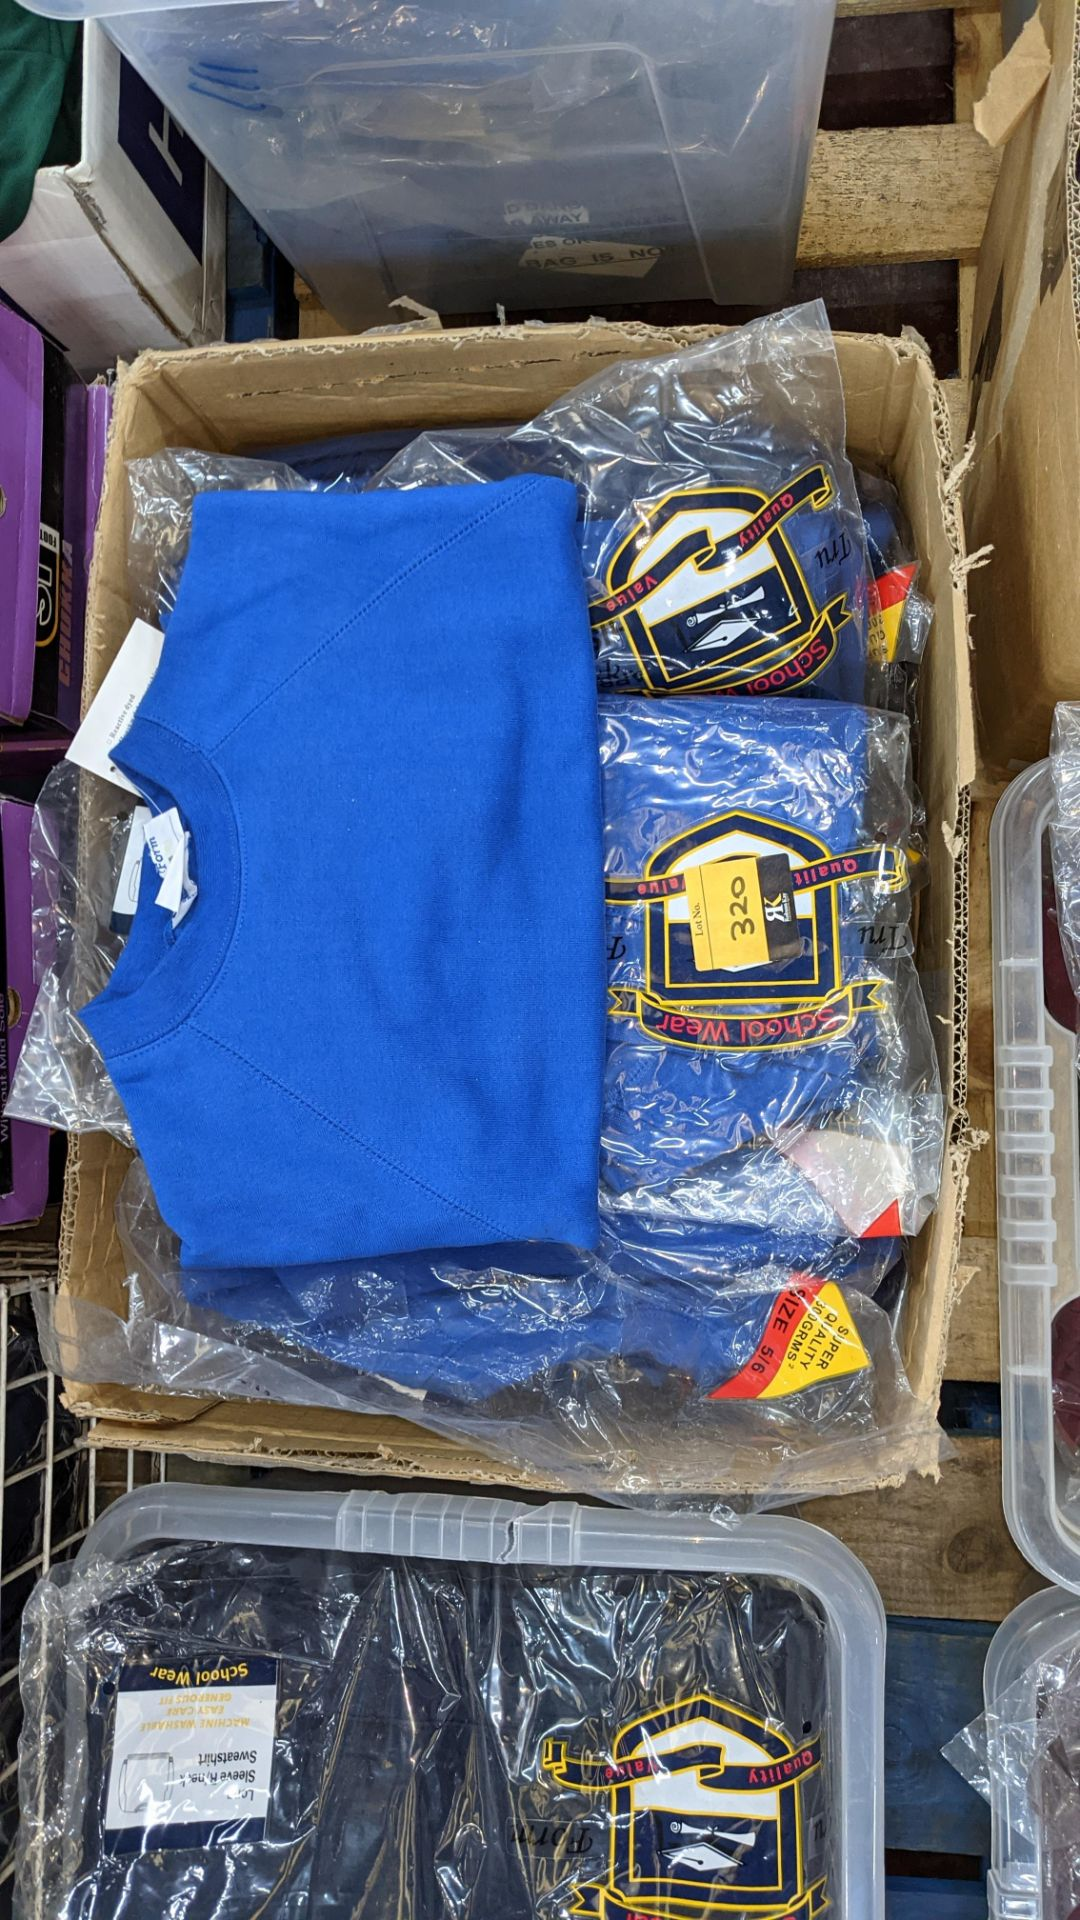 Approx 25 off blue children's sweatshirts & similar - the contents of 1 box - Image 3 of 3